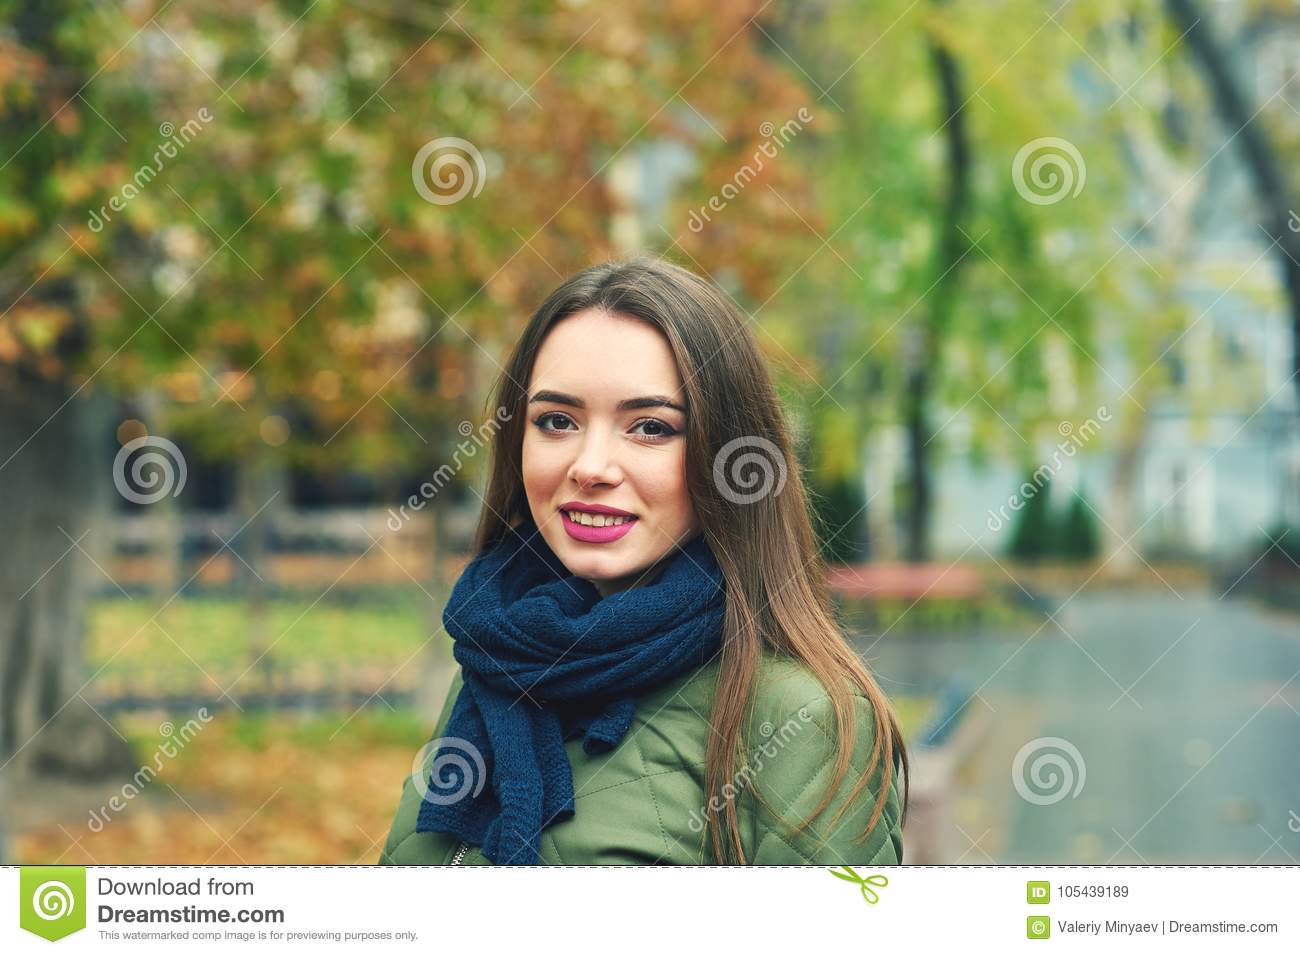 Outdoor portrait of young woman in autumnal city